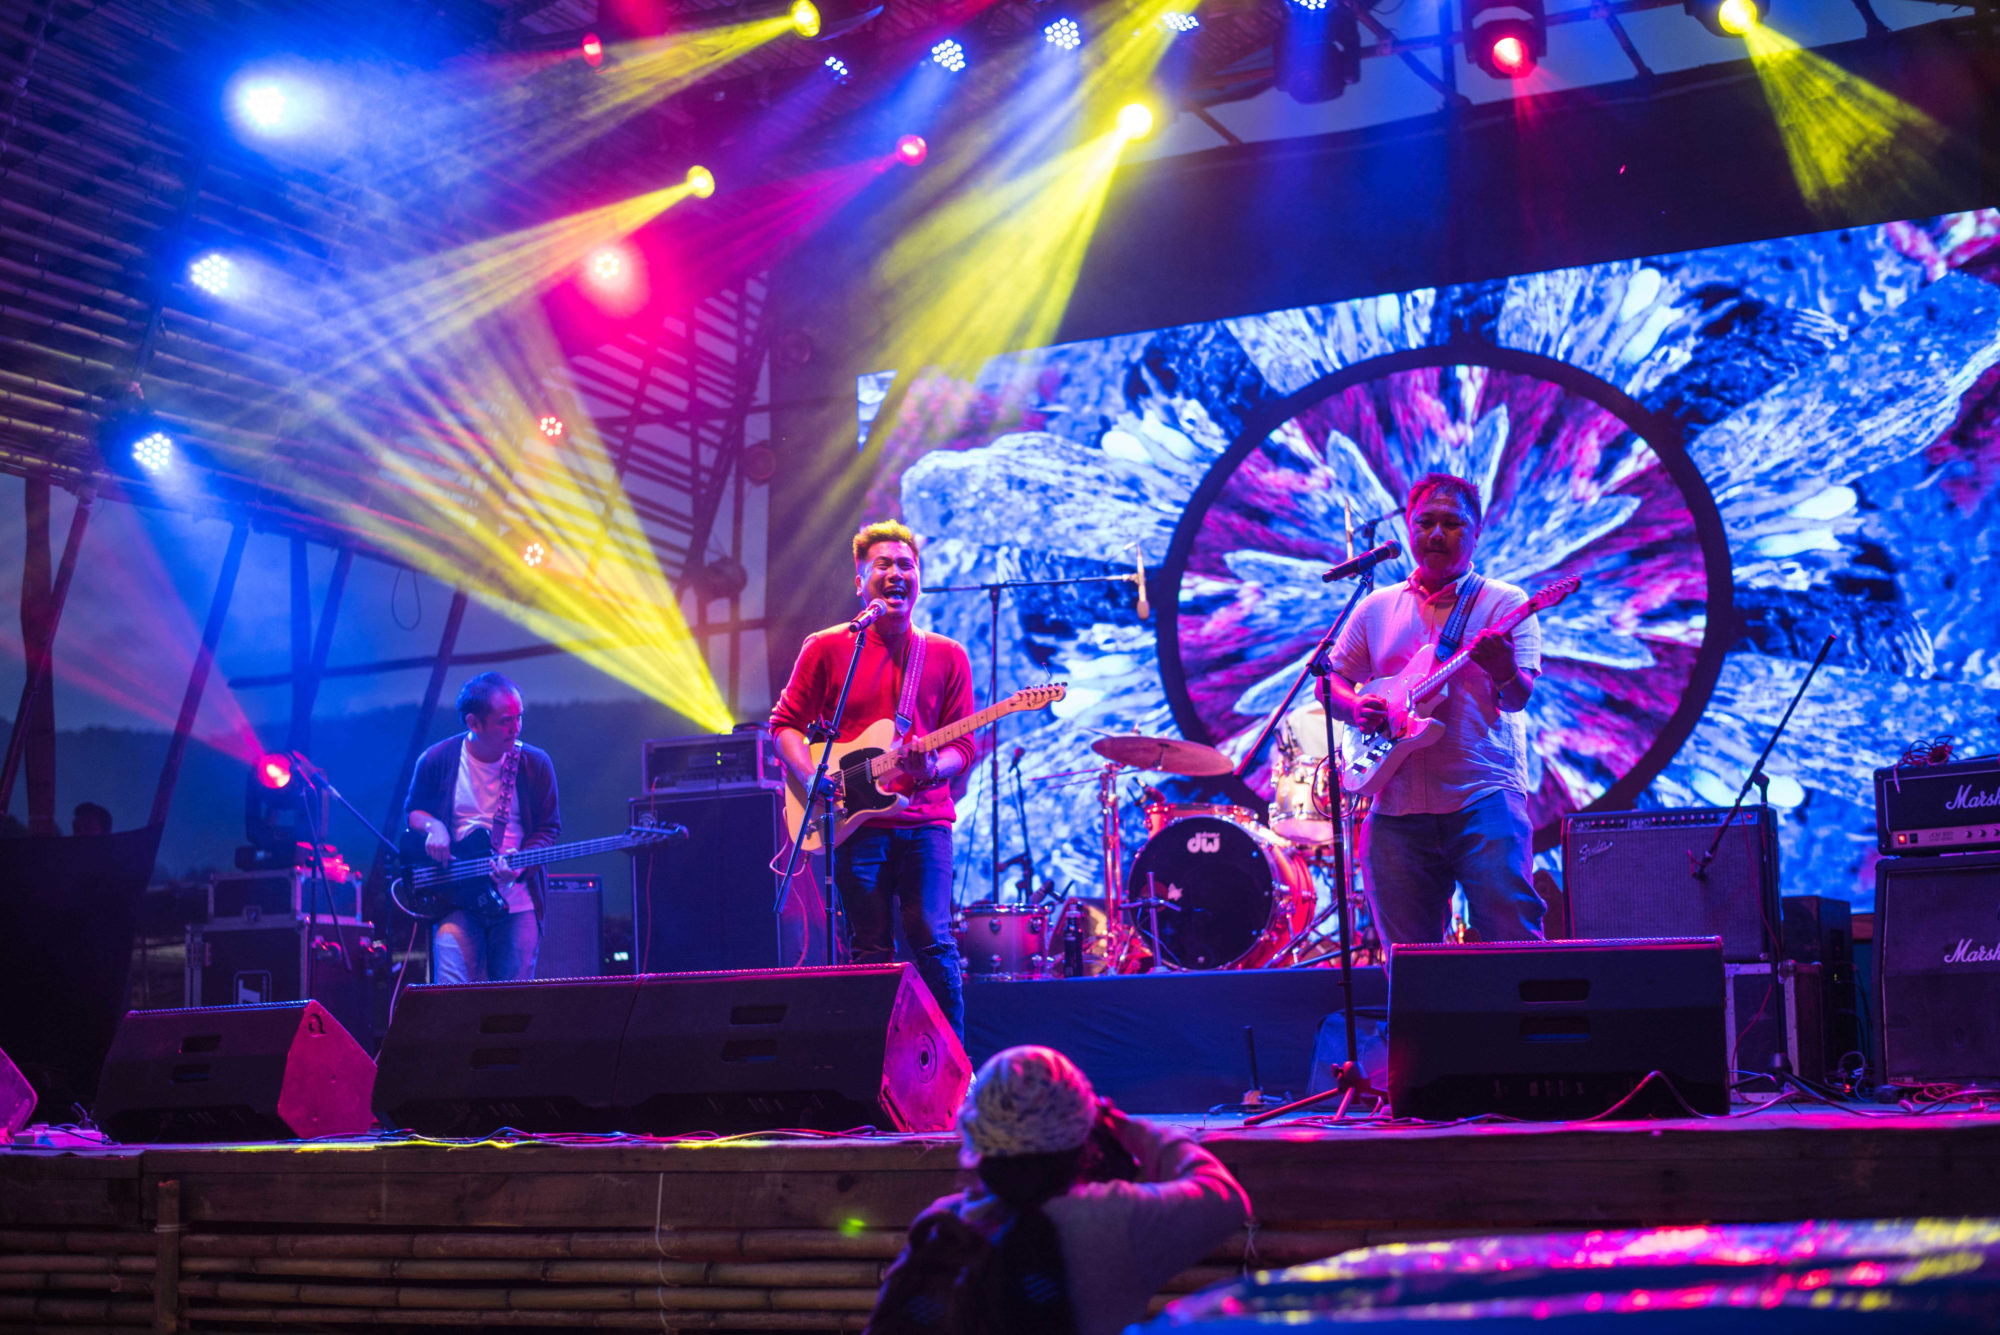 What kinds of music and bands play at Ziro Music Festival?